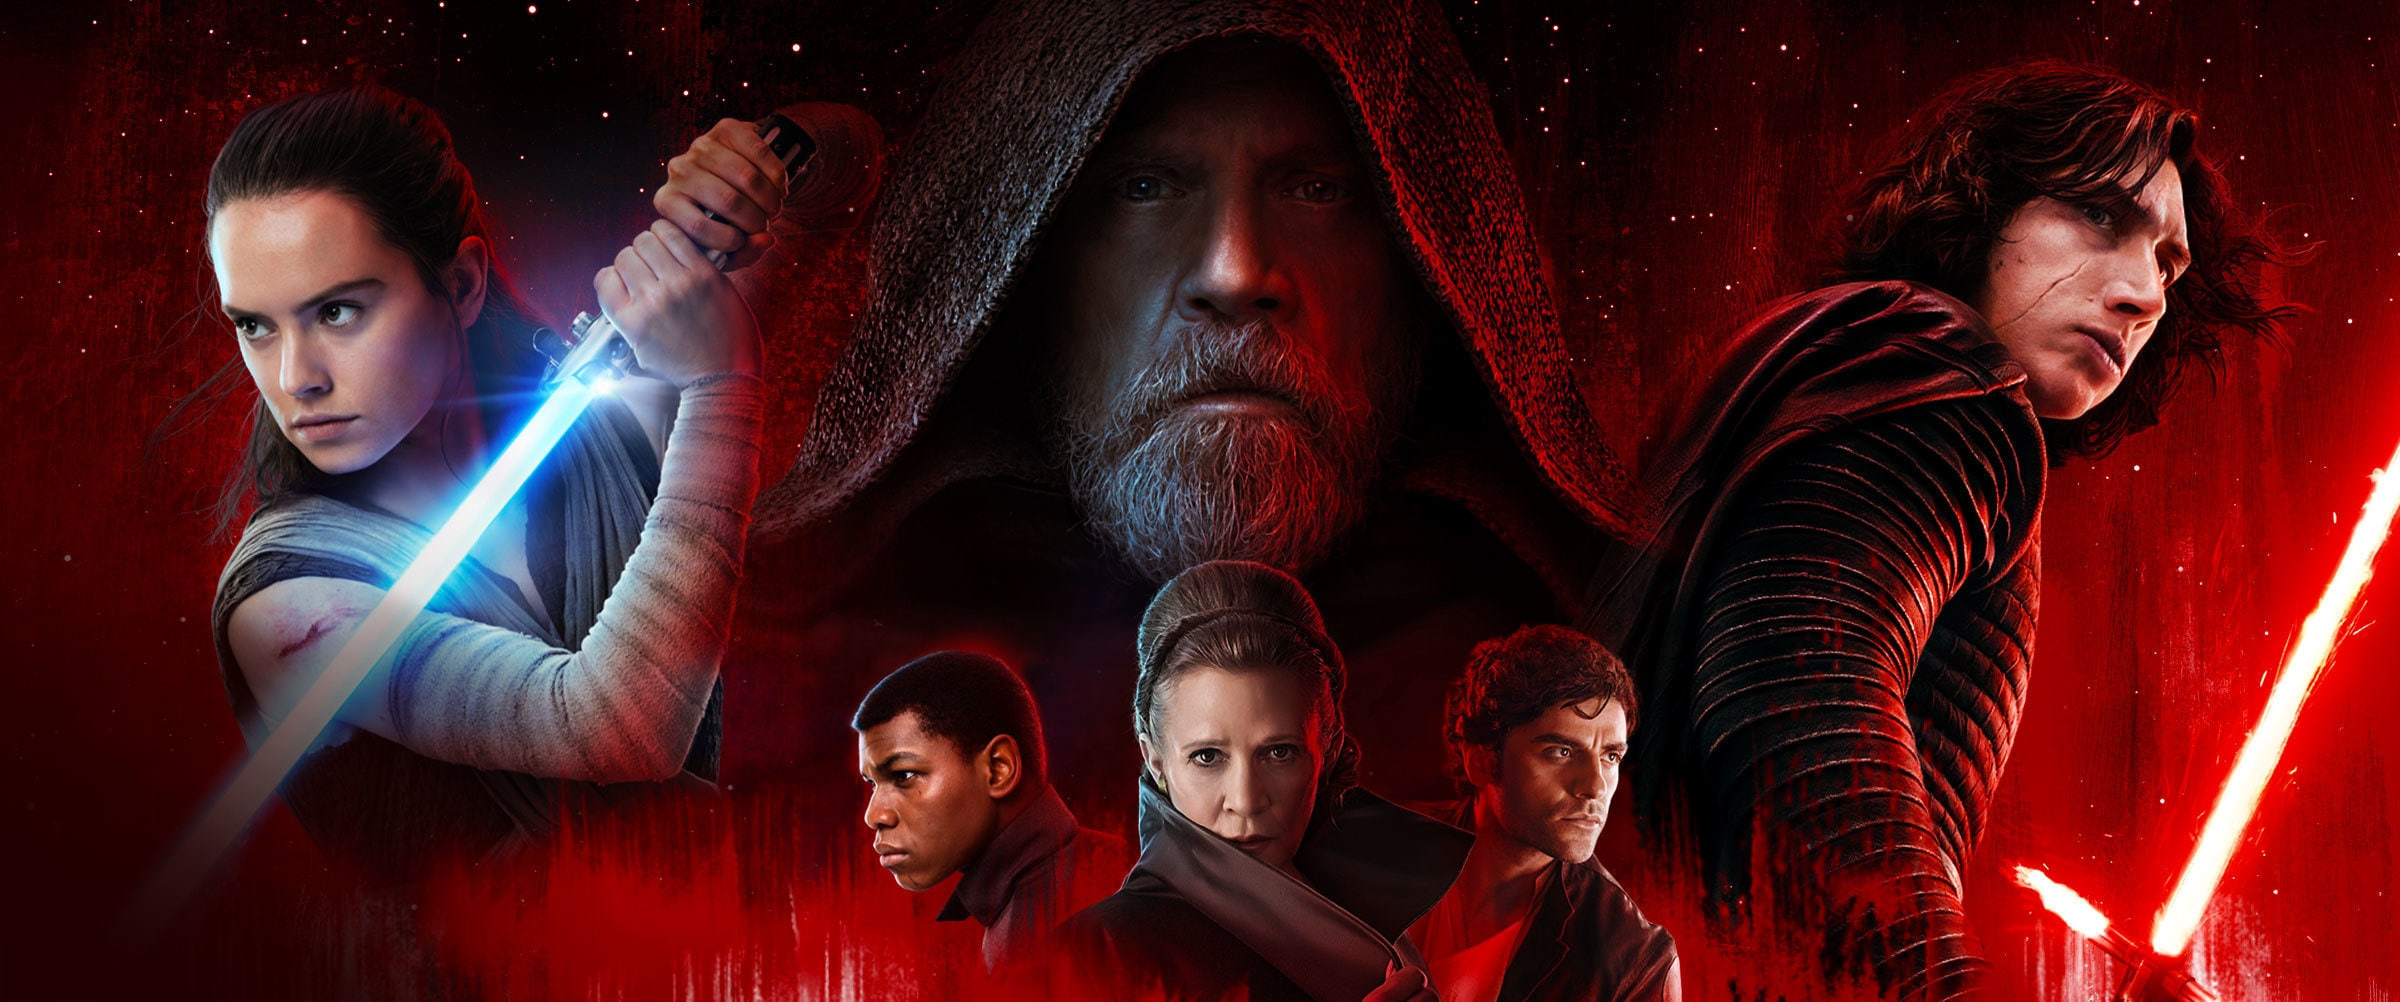 PL - Star Wars The Last Jedi - Flex-Content Hero Homepage - Video